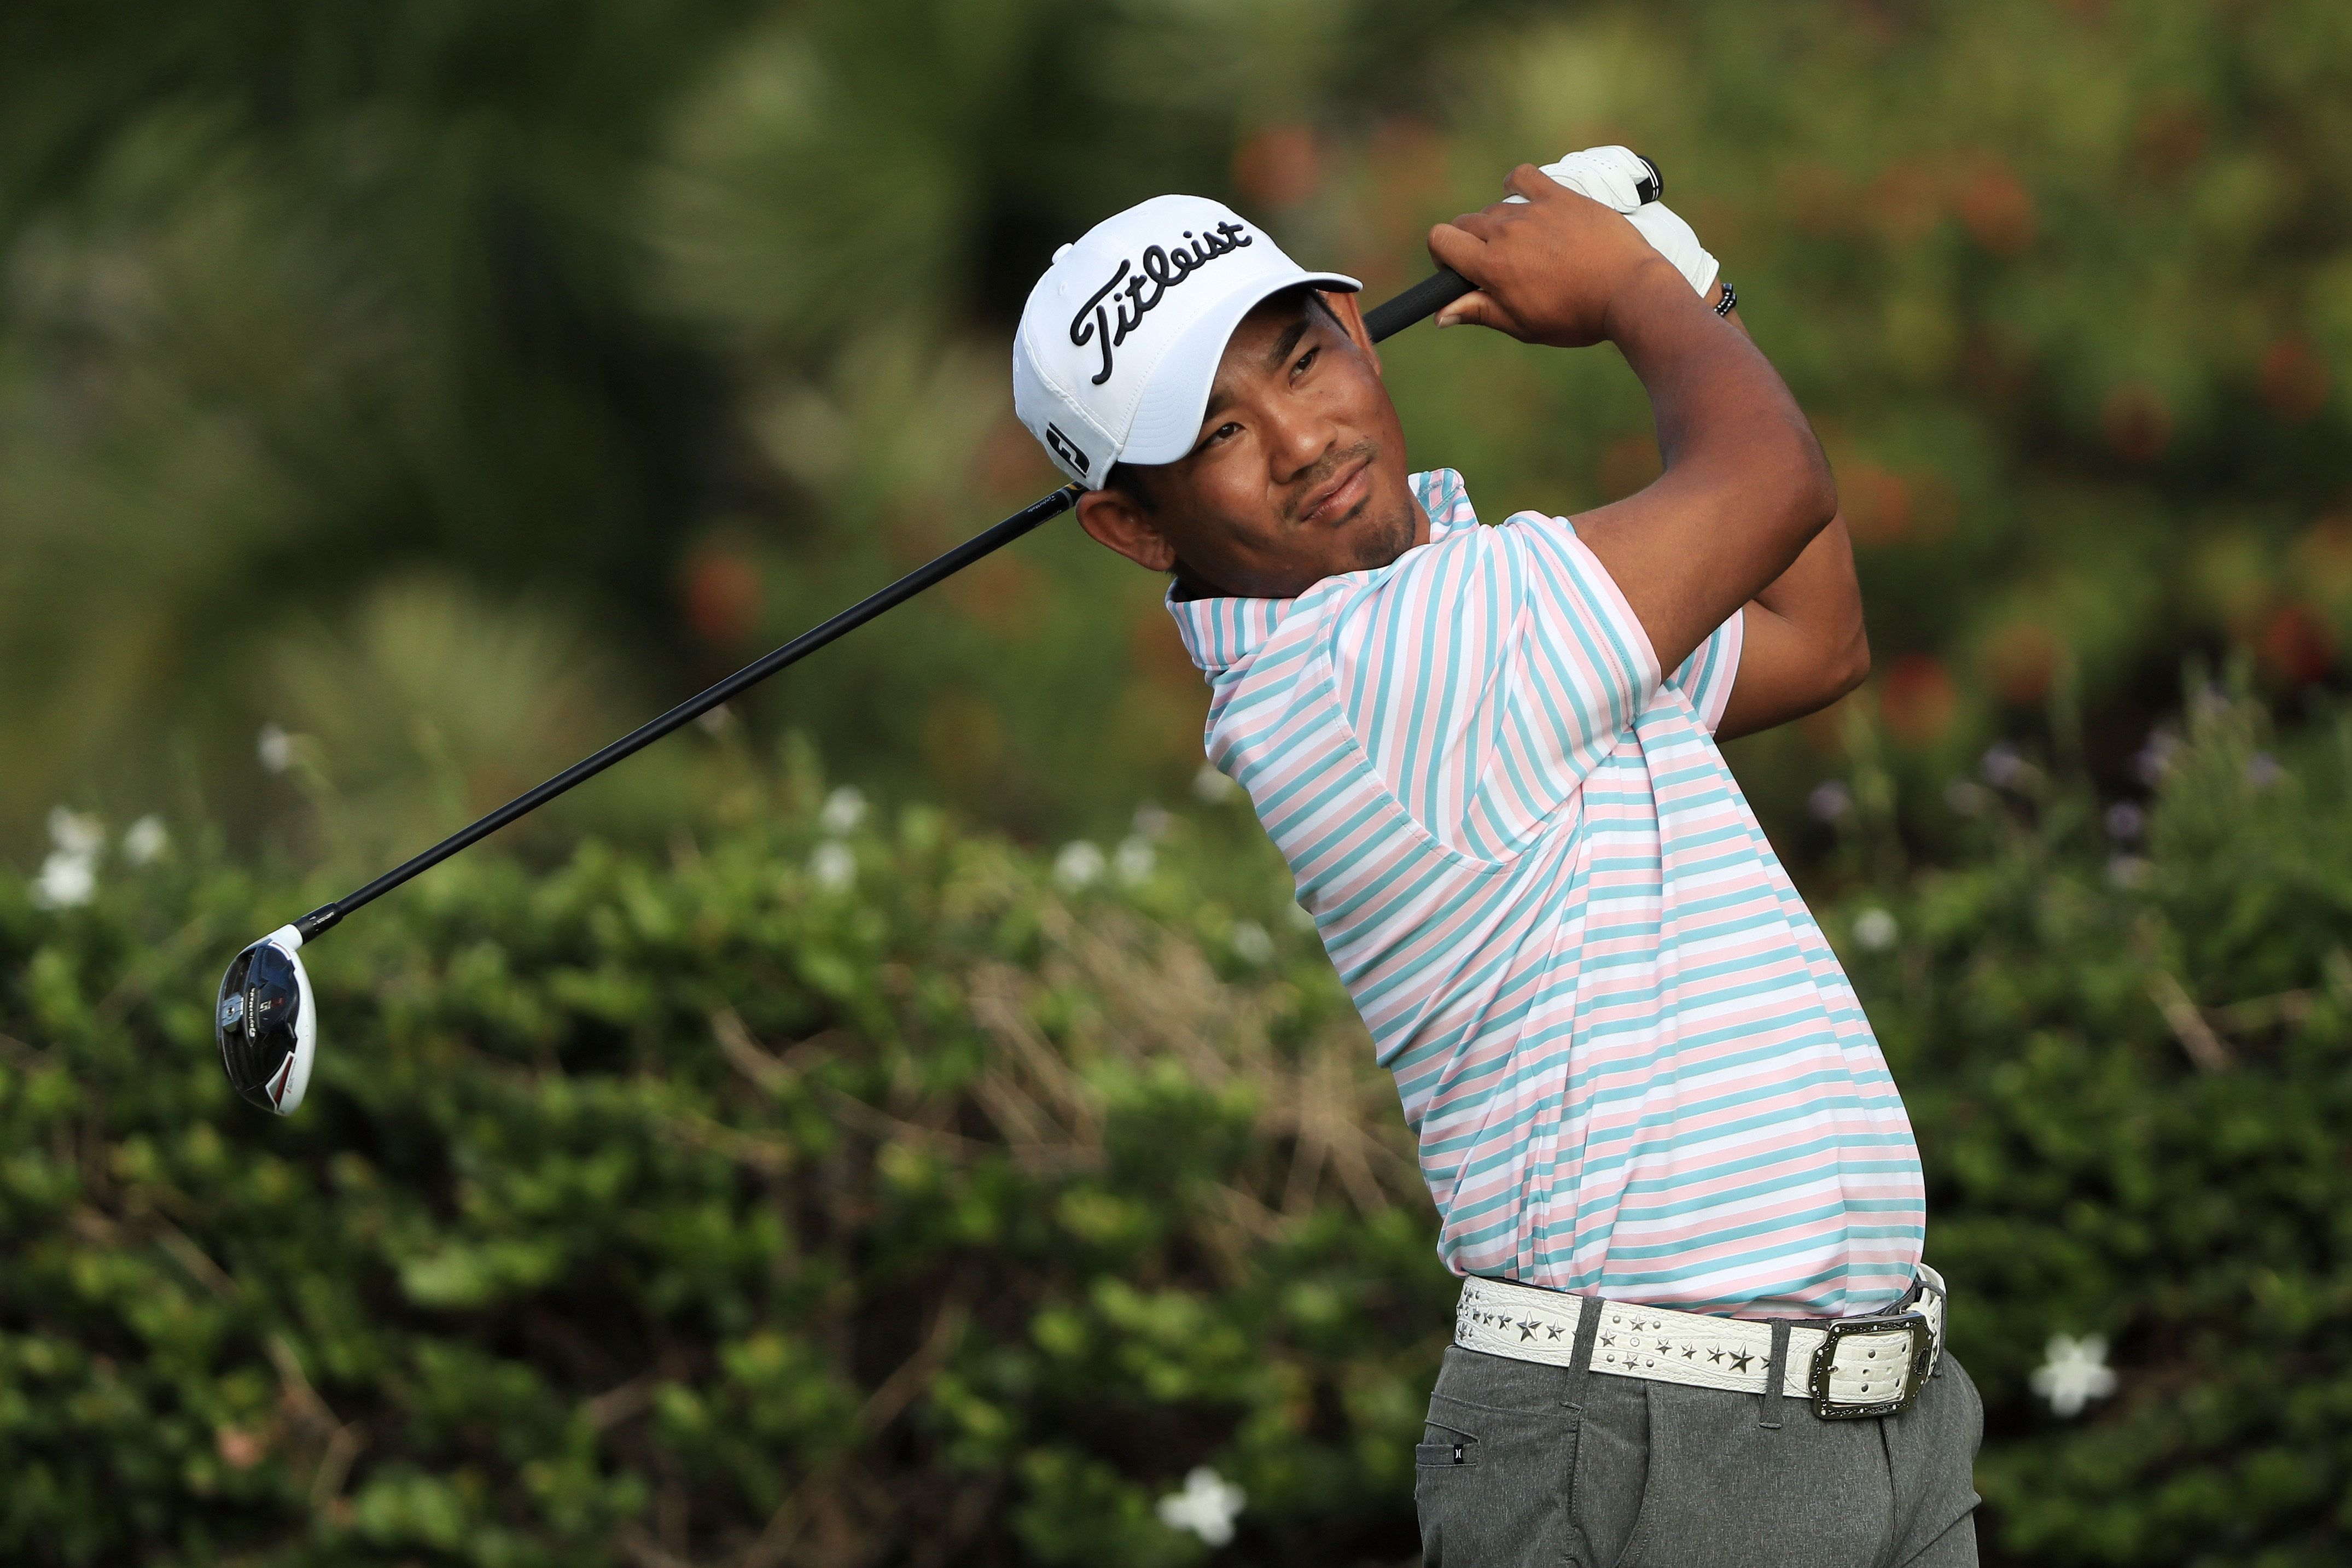 HONOLULU, HI - JANUARY 12:  Tadd Fujikawa of the United States plays his shot from the 15th tee during the first round of the Sony Open In Hawaii at Waialae Country Club on January 12, 2017 in Honolulu, Hawaii.  (Photo by Sam Greenwood/Getty Images)